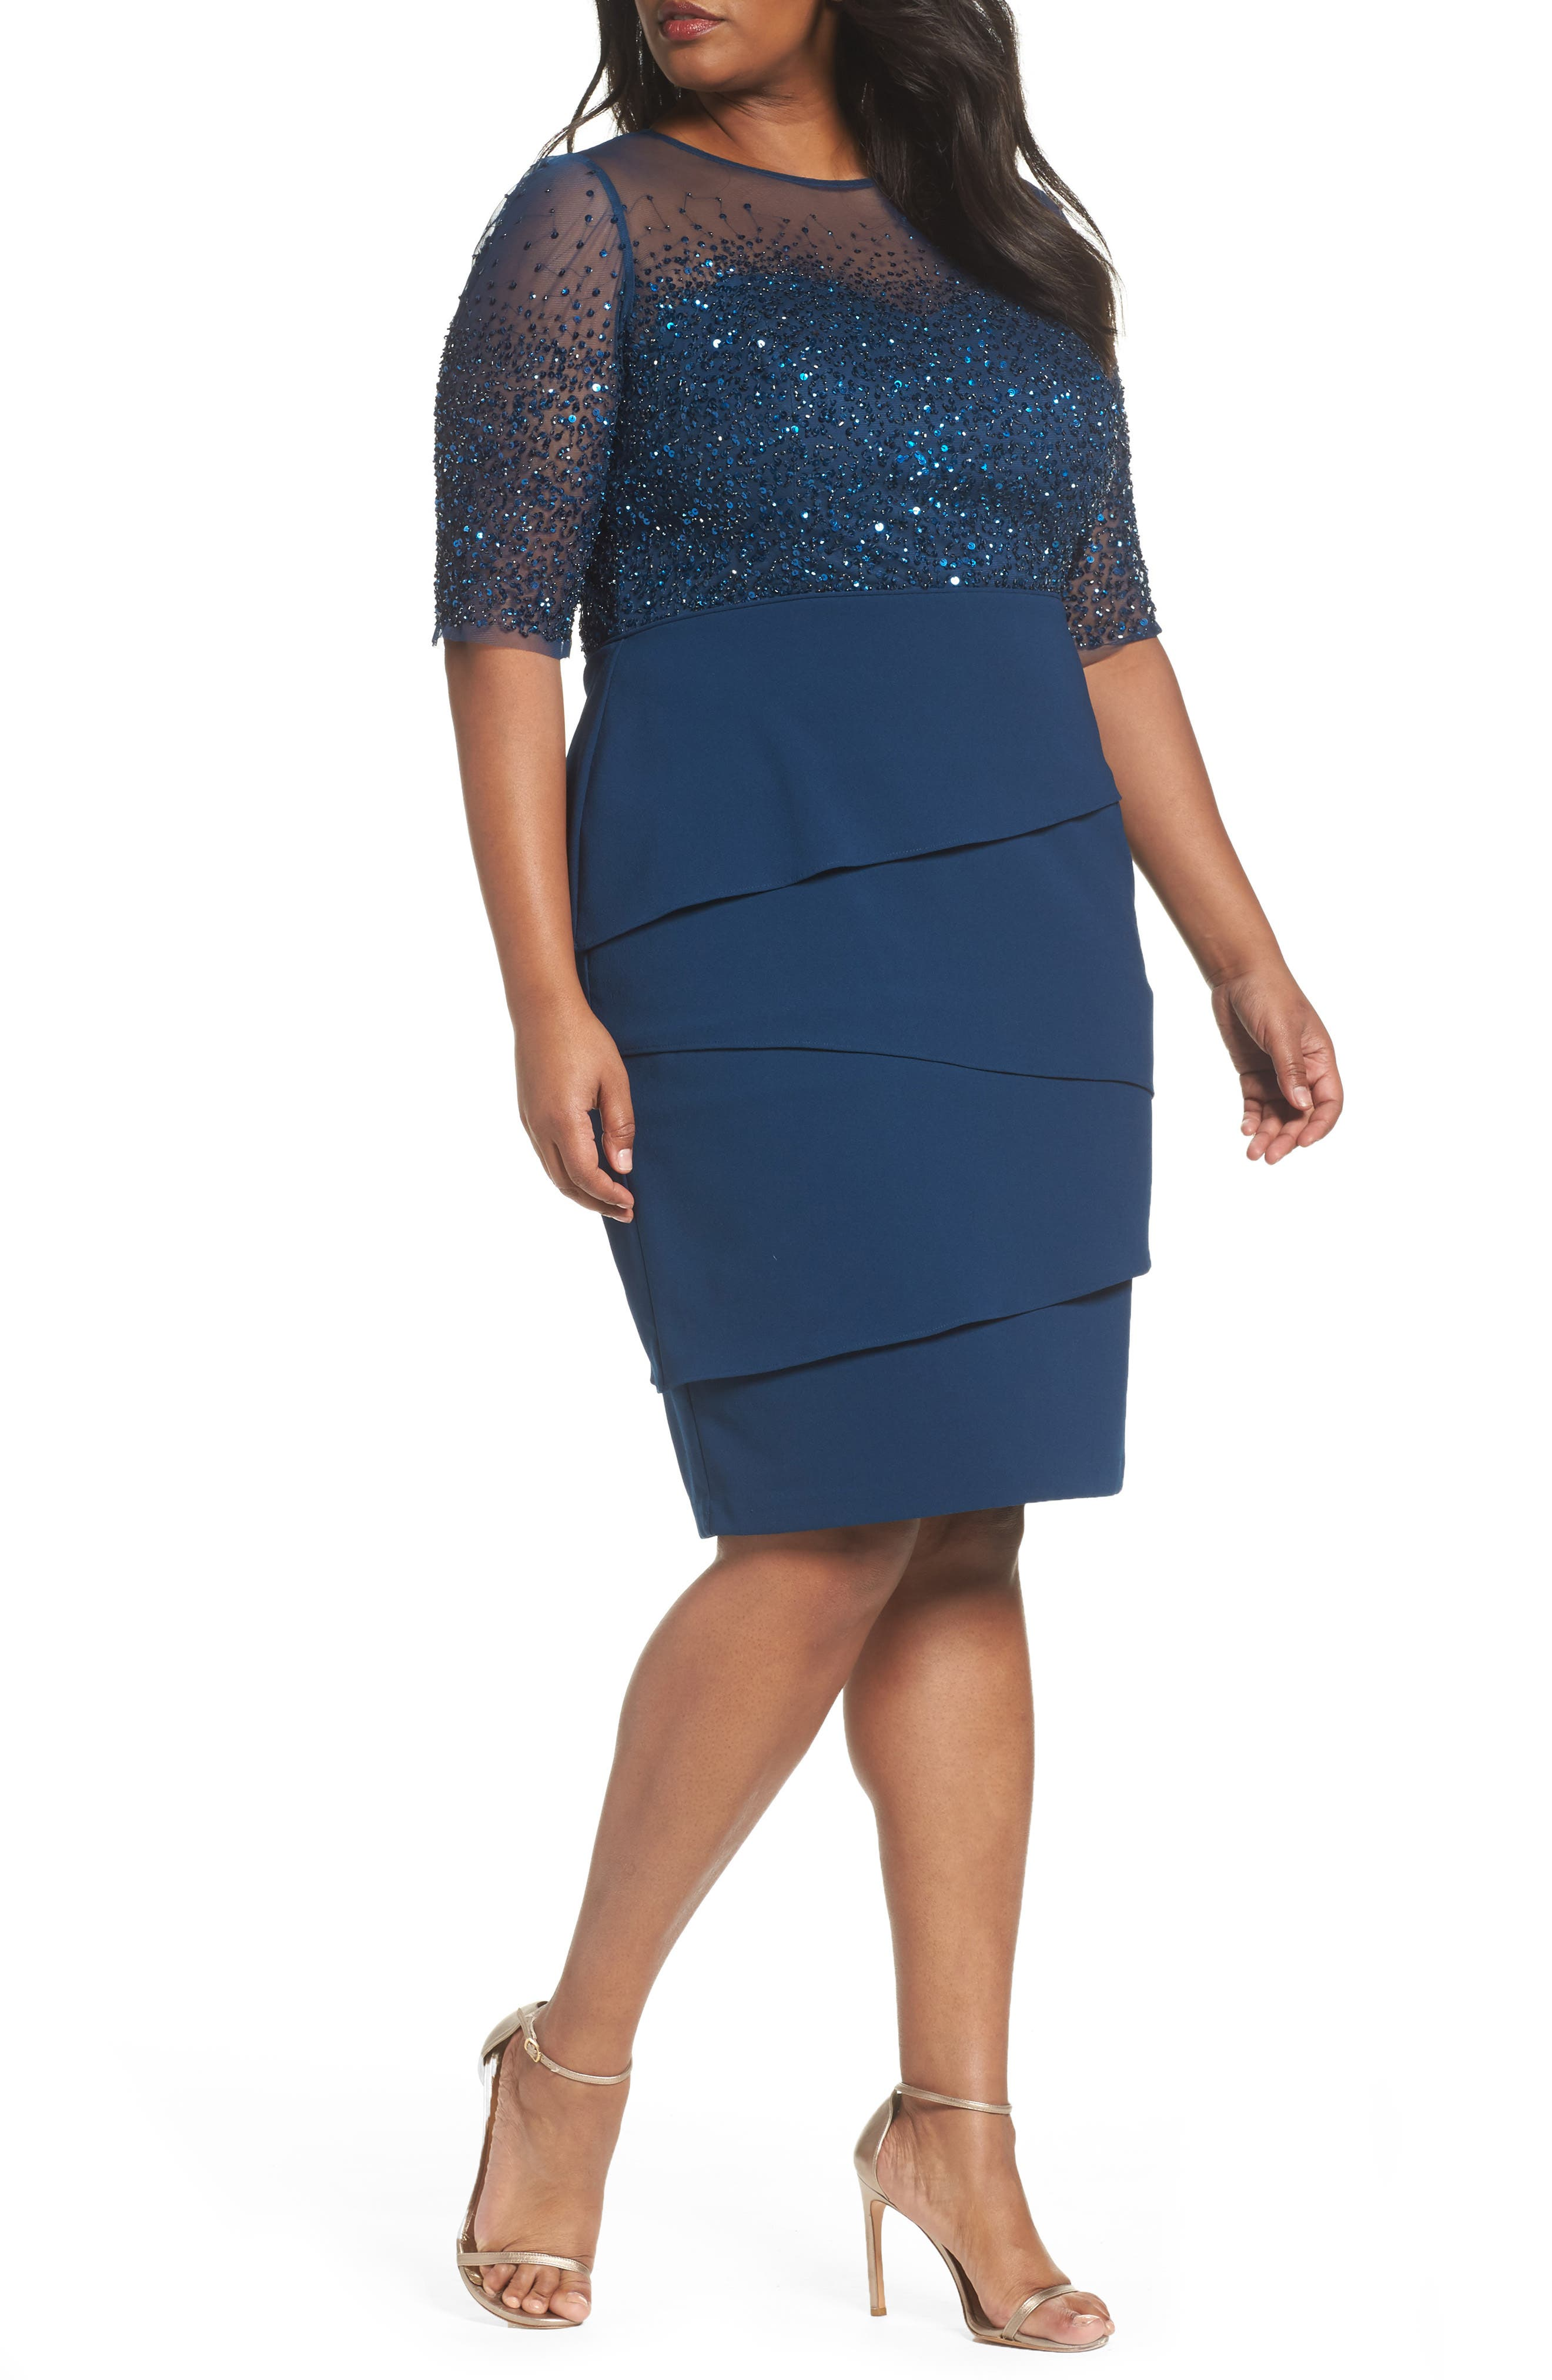 Alternate Image 1 Selected - Adrianna Papell Beaded Bodice Sheath Dress (Plus Size)